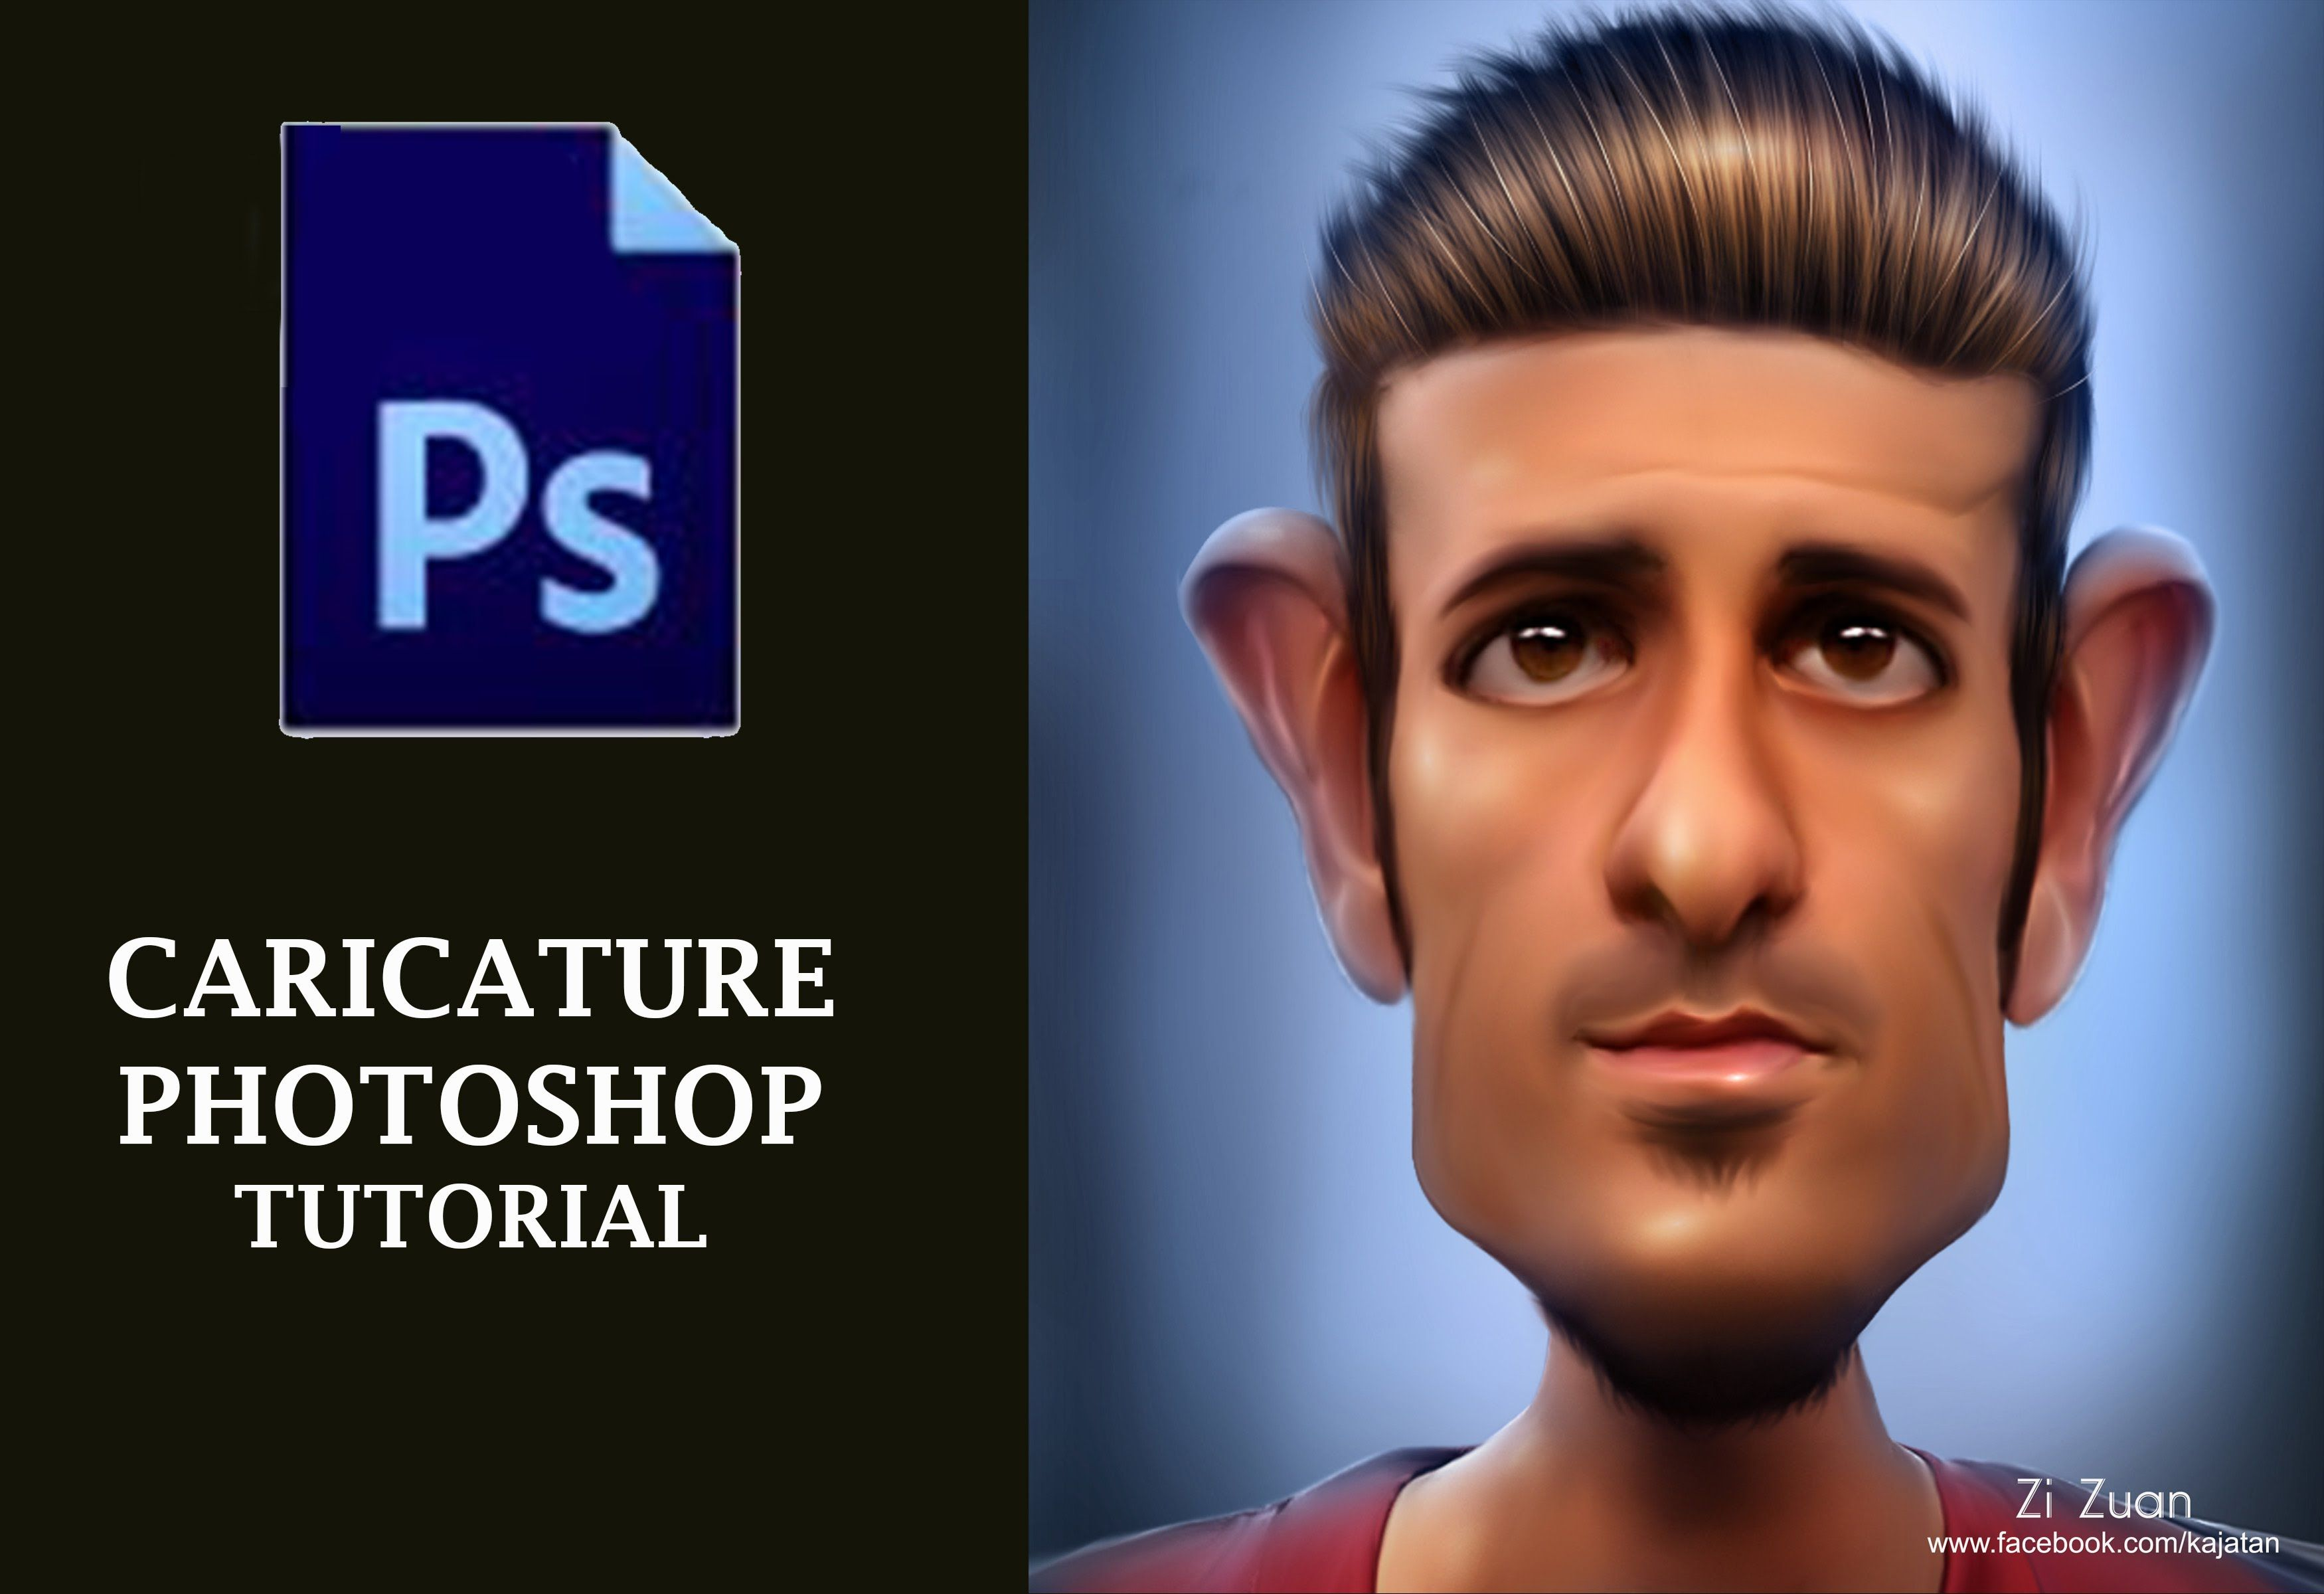 Photoshop tutorial how to make caricature in photoshop cs6 photoshop tutorial how to make caricature in photoshop cs6 baditri Gallery